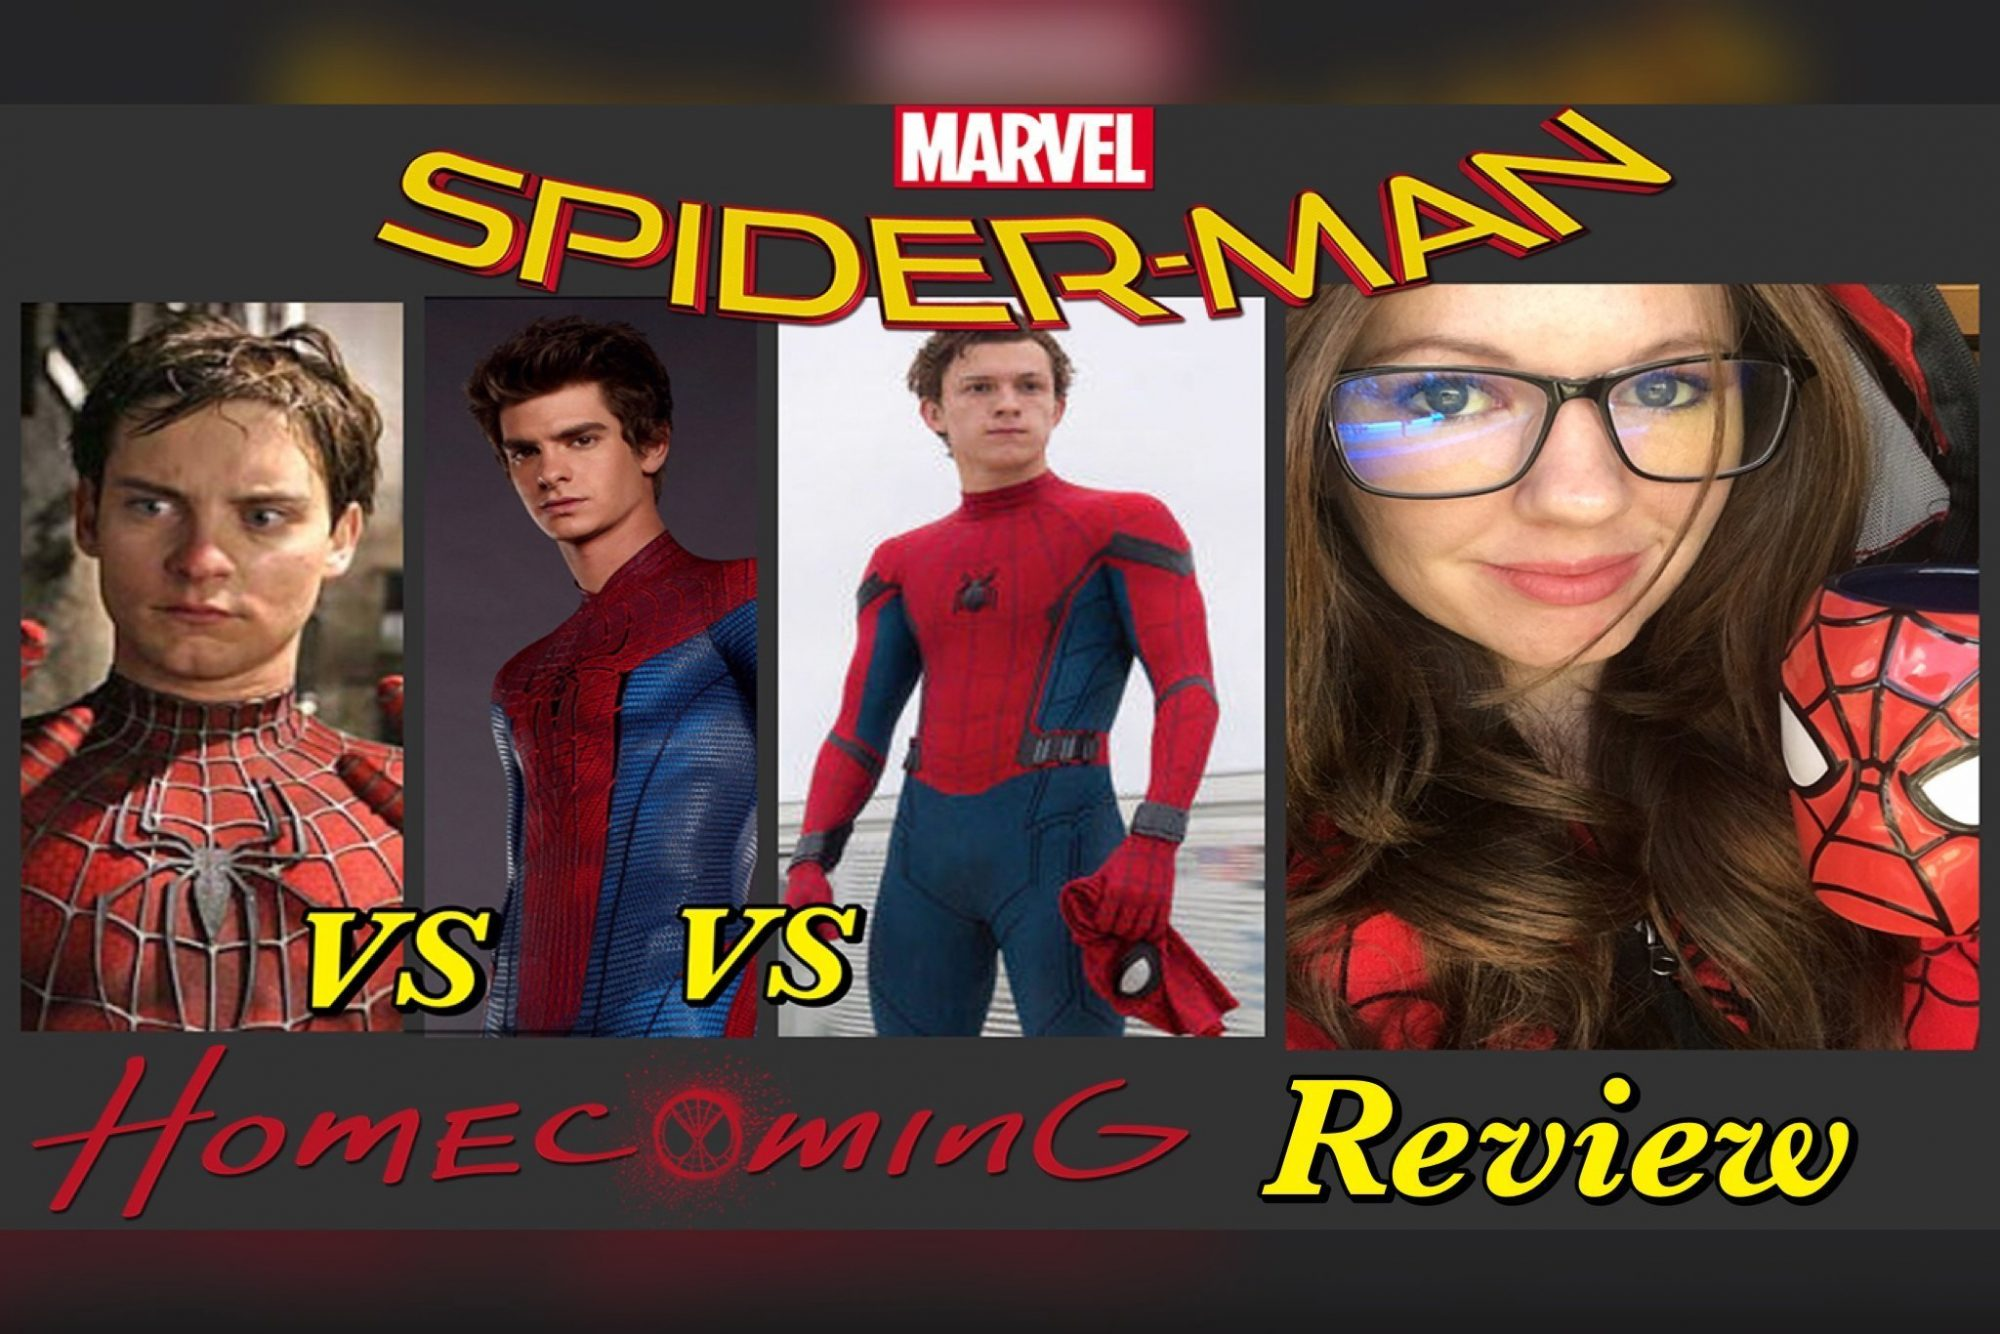 Spider-Man: Homecoming Rating and Review